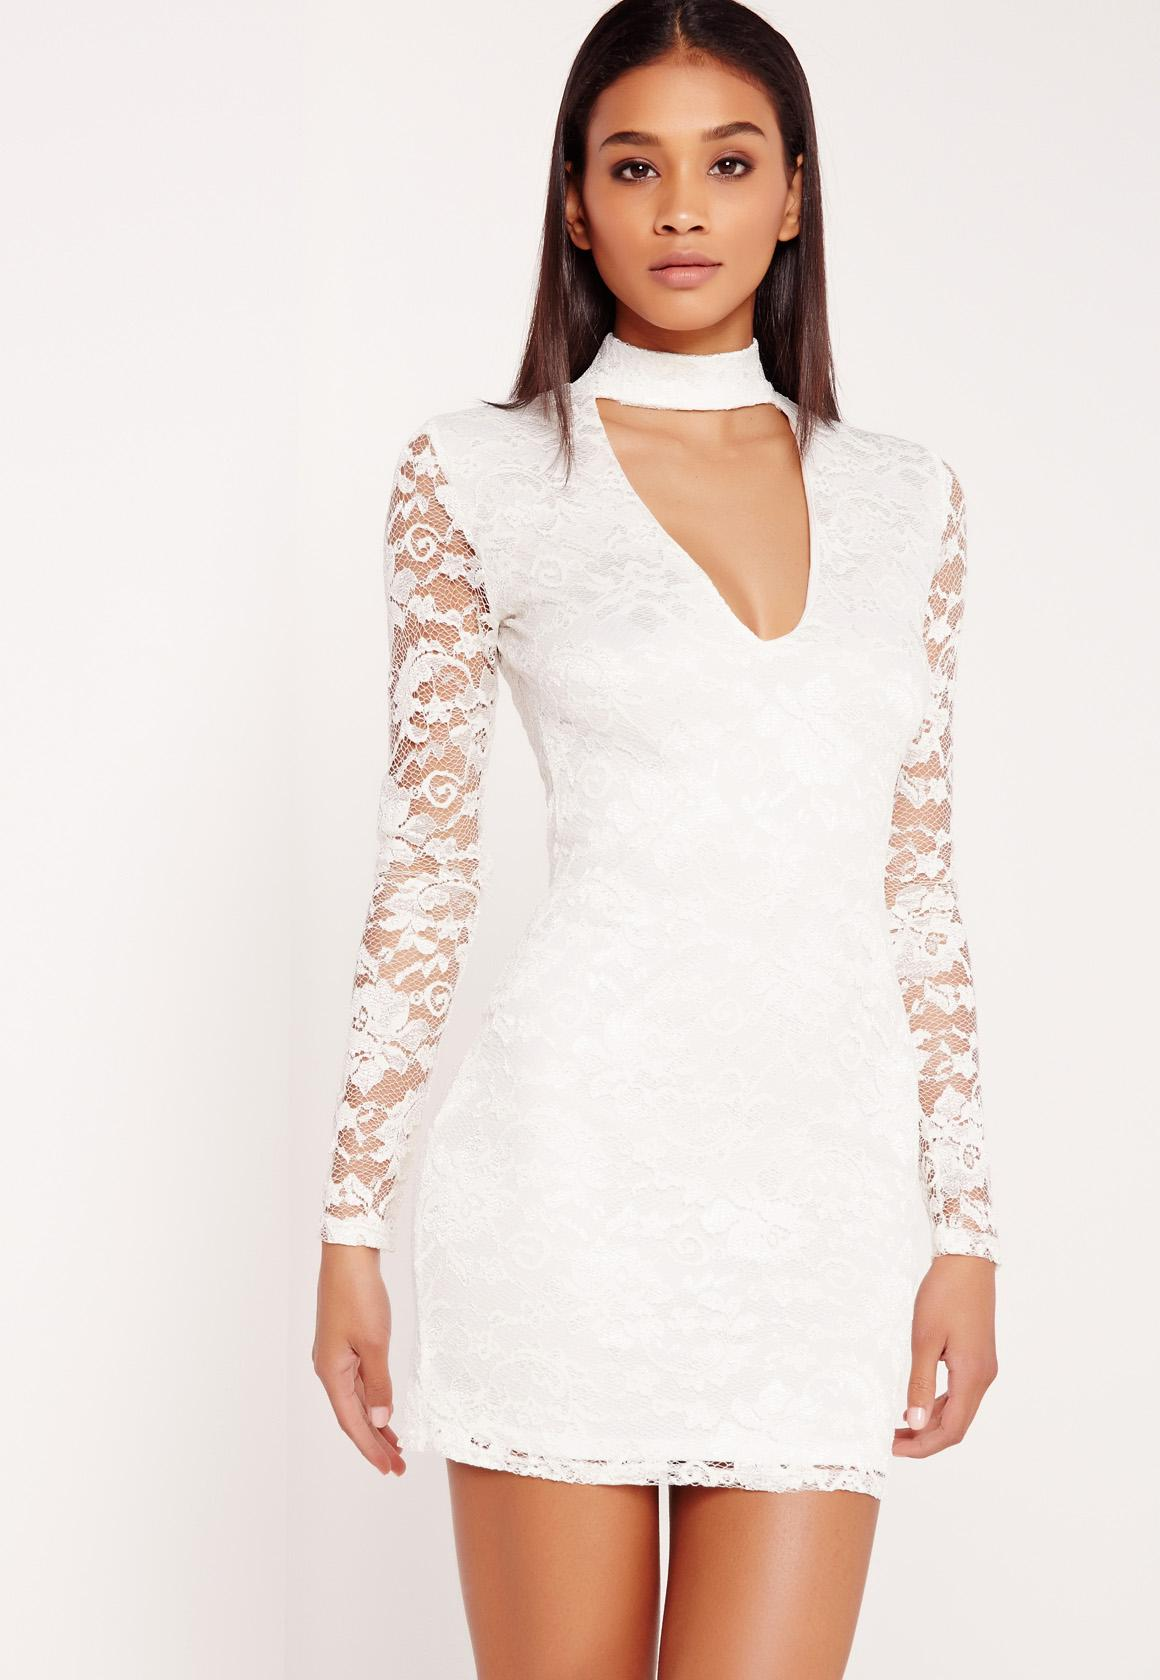 Long Sleeve Lace Choker Mini Dress White | Missguided Australia